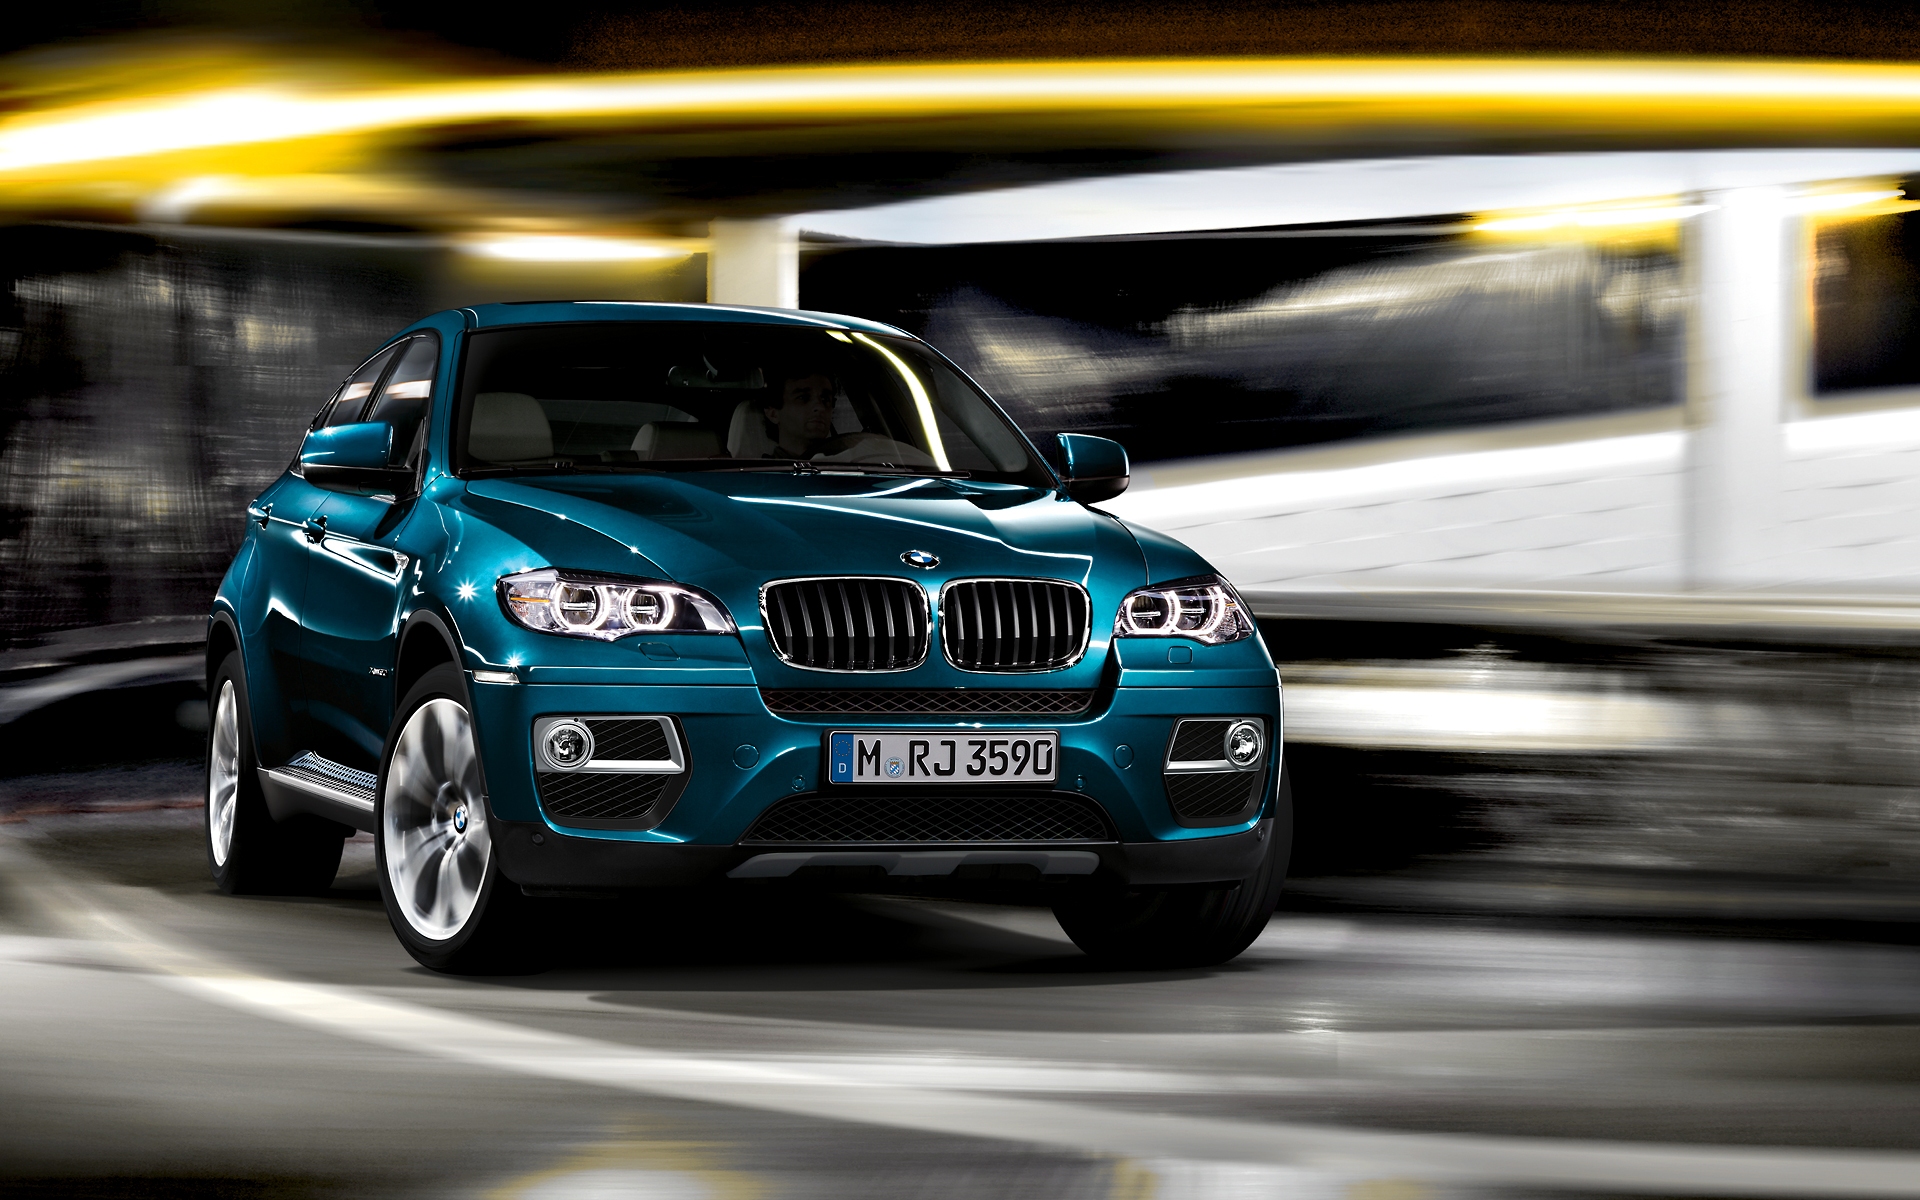 2013 Bmw X6 Lci Facelift Announced